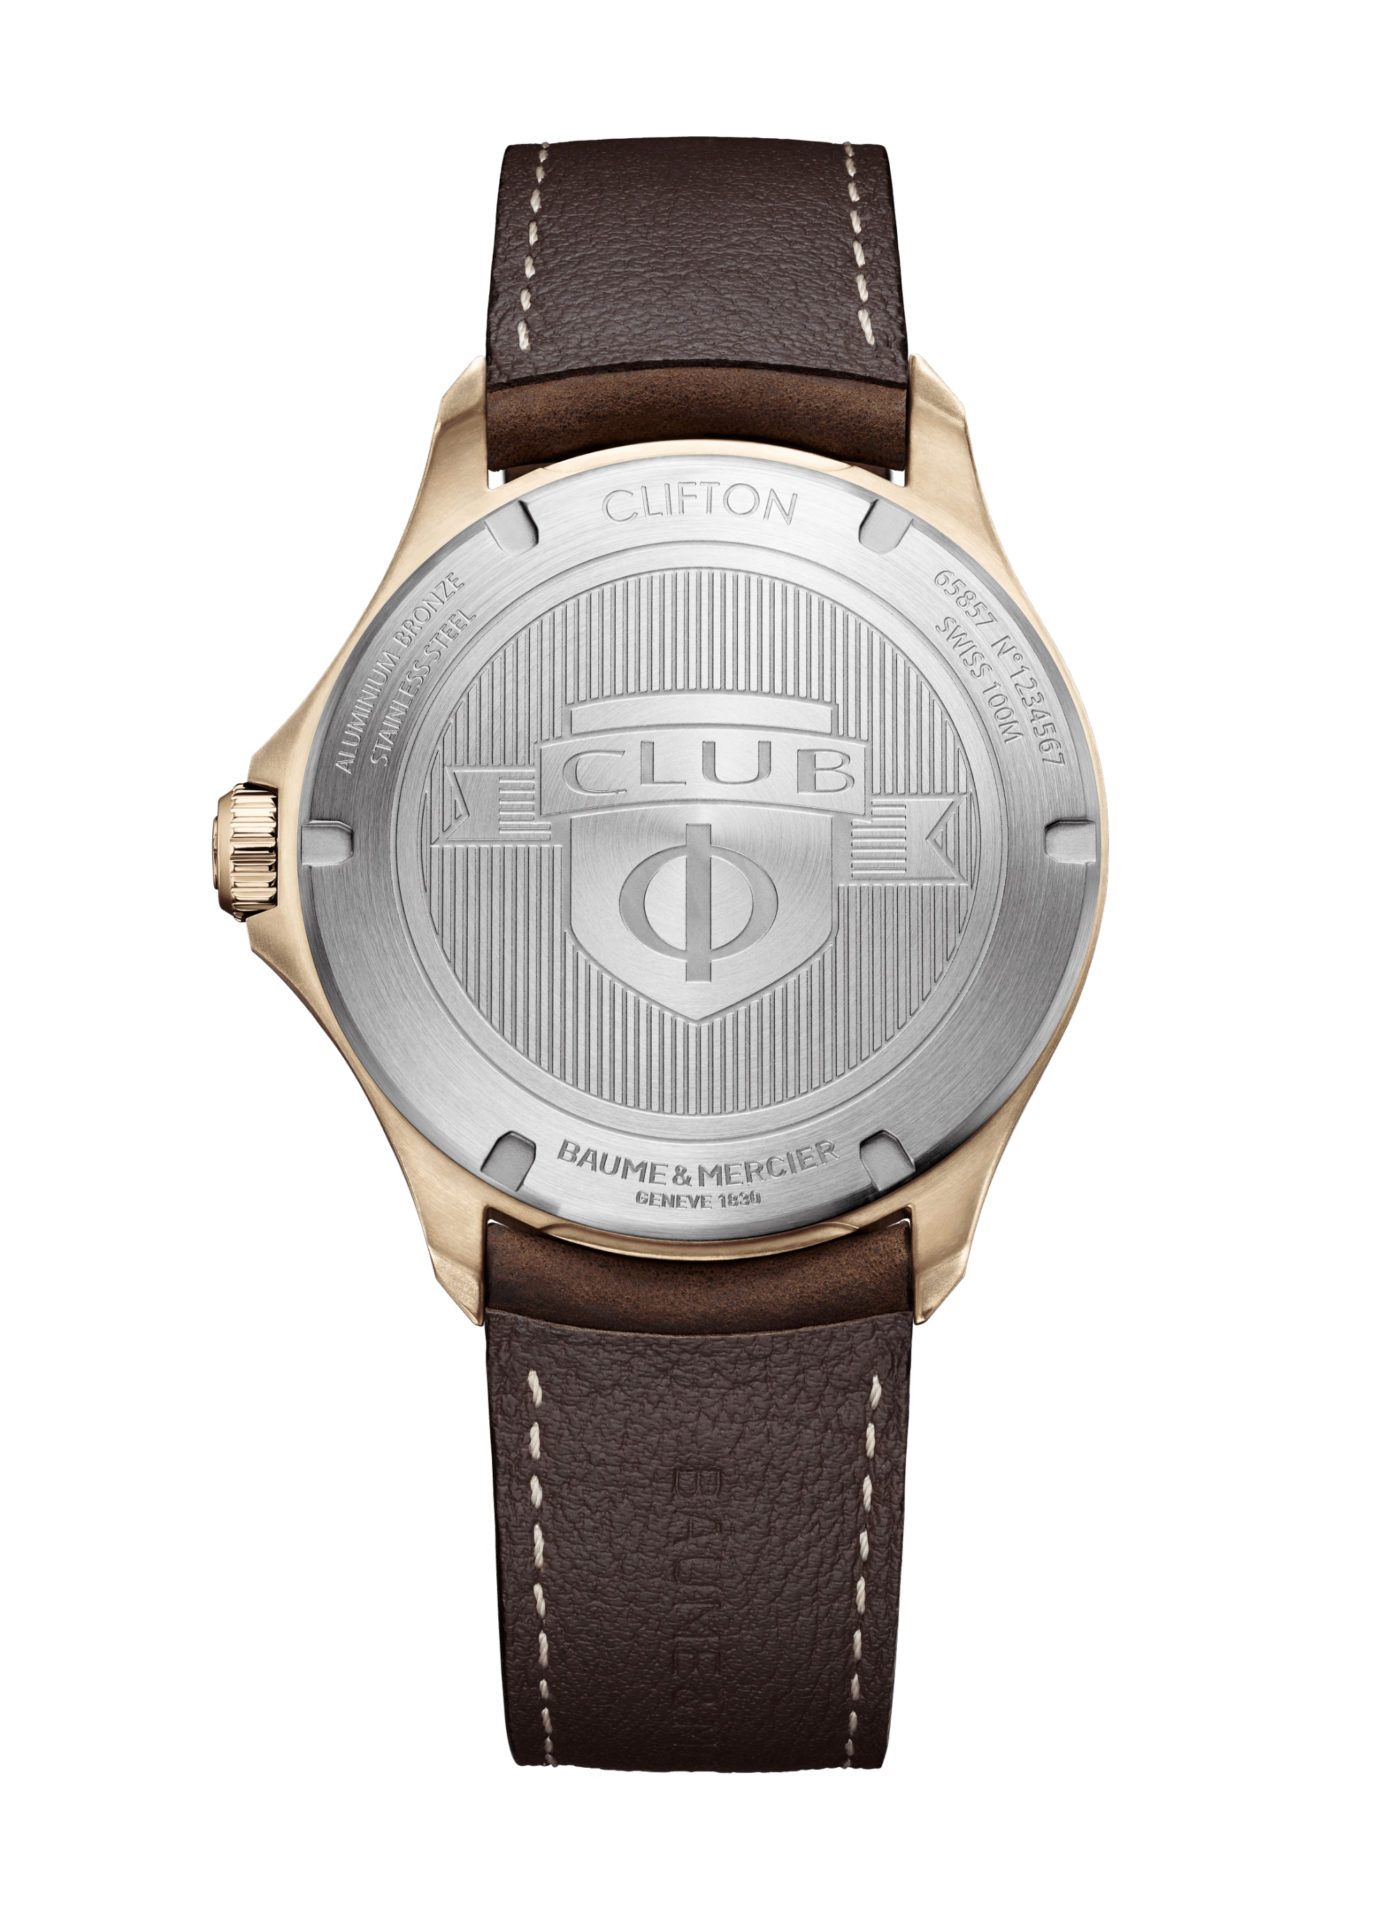 Baume-&-Mercier-Clifton-Club-10500***-Hall-of-Time